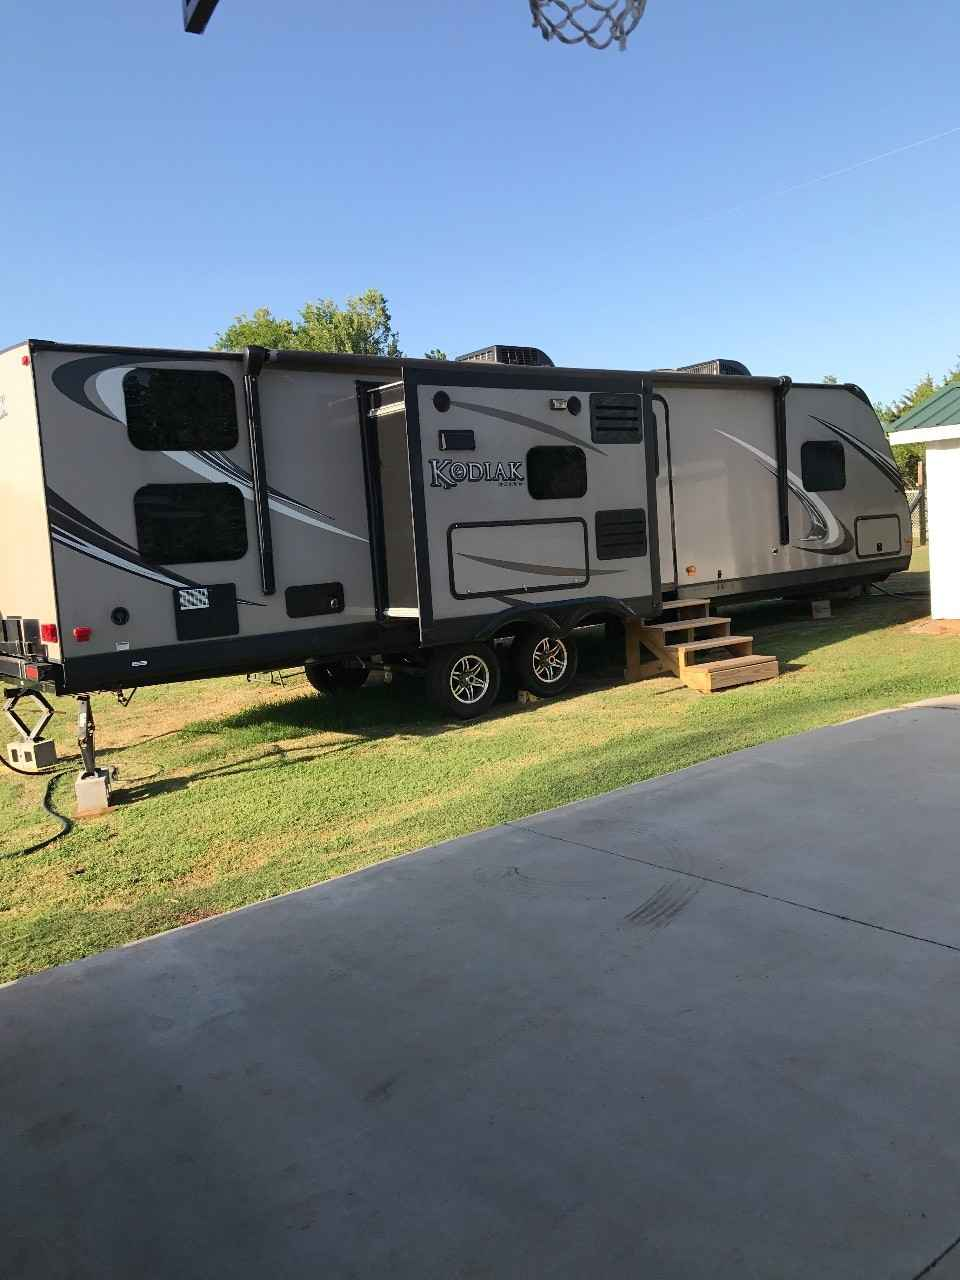 Kodiak Travel Trailer >> 2014 Used Dutchmen KODIAK 300BHSL Travel Trailer in Oklahoma OK